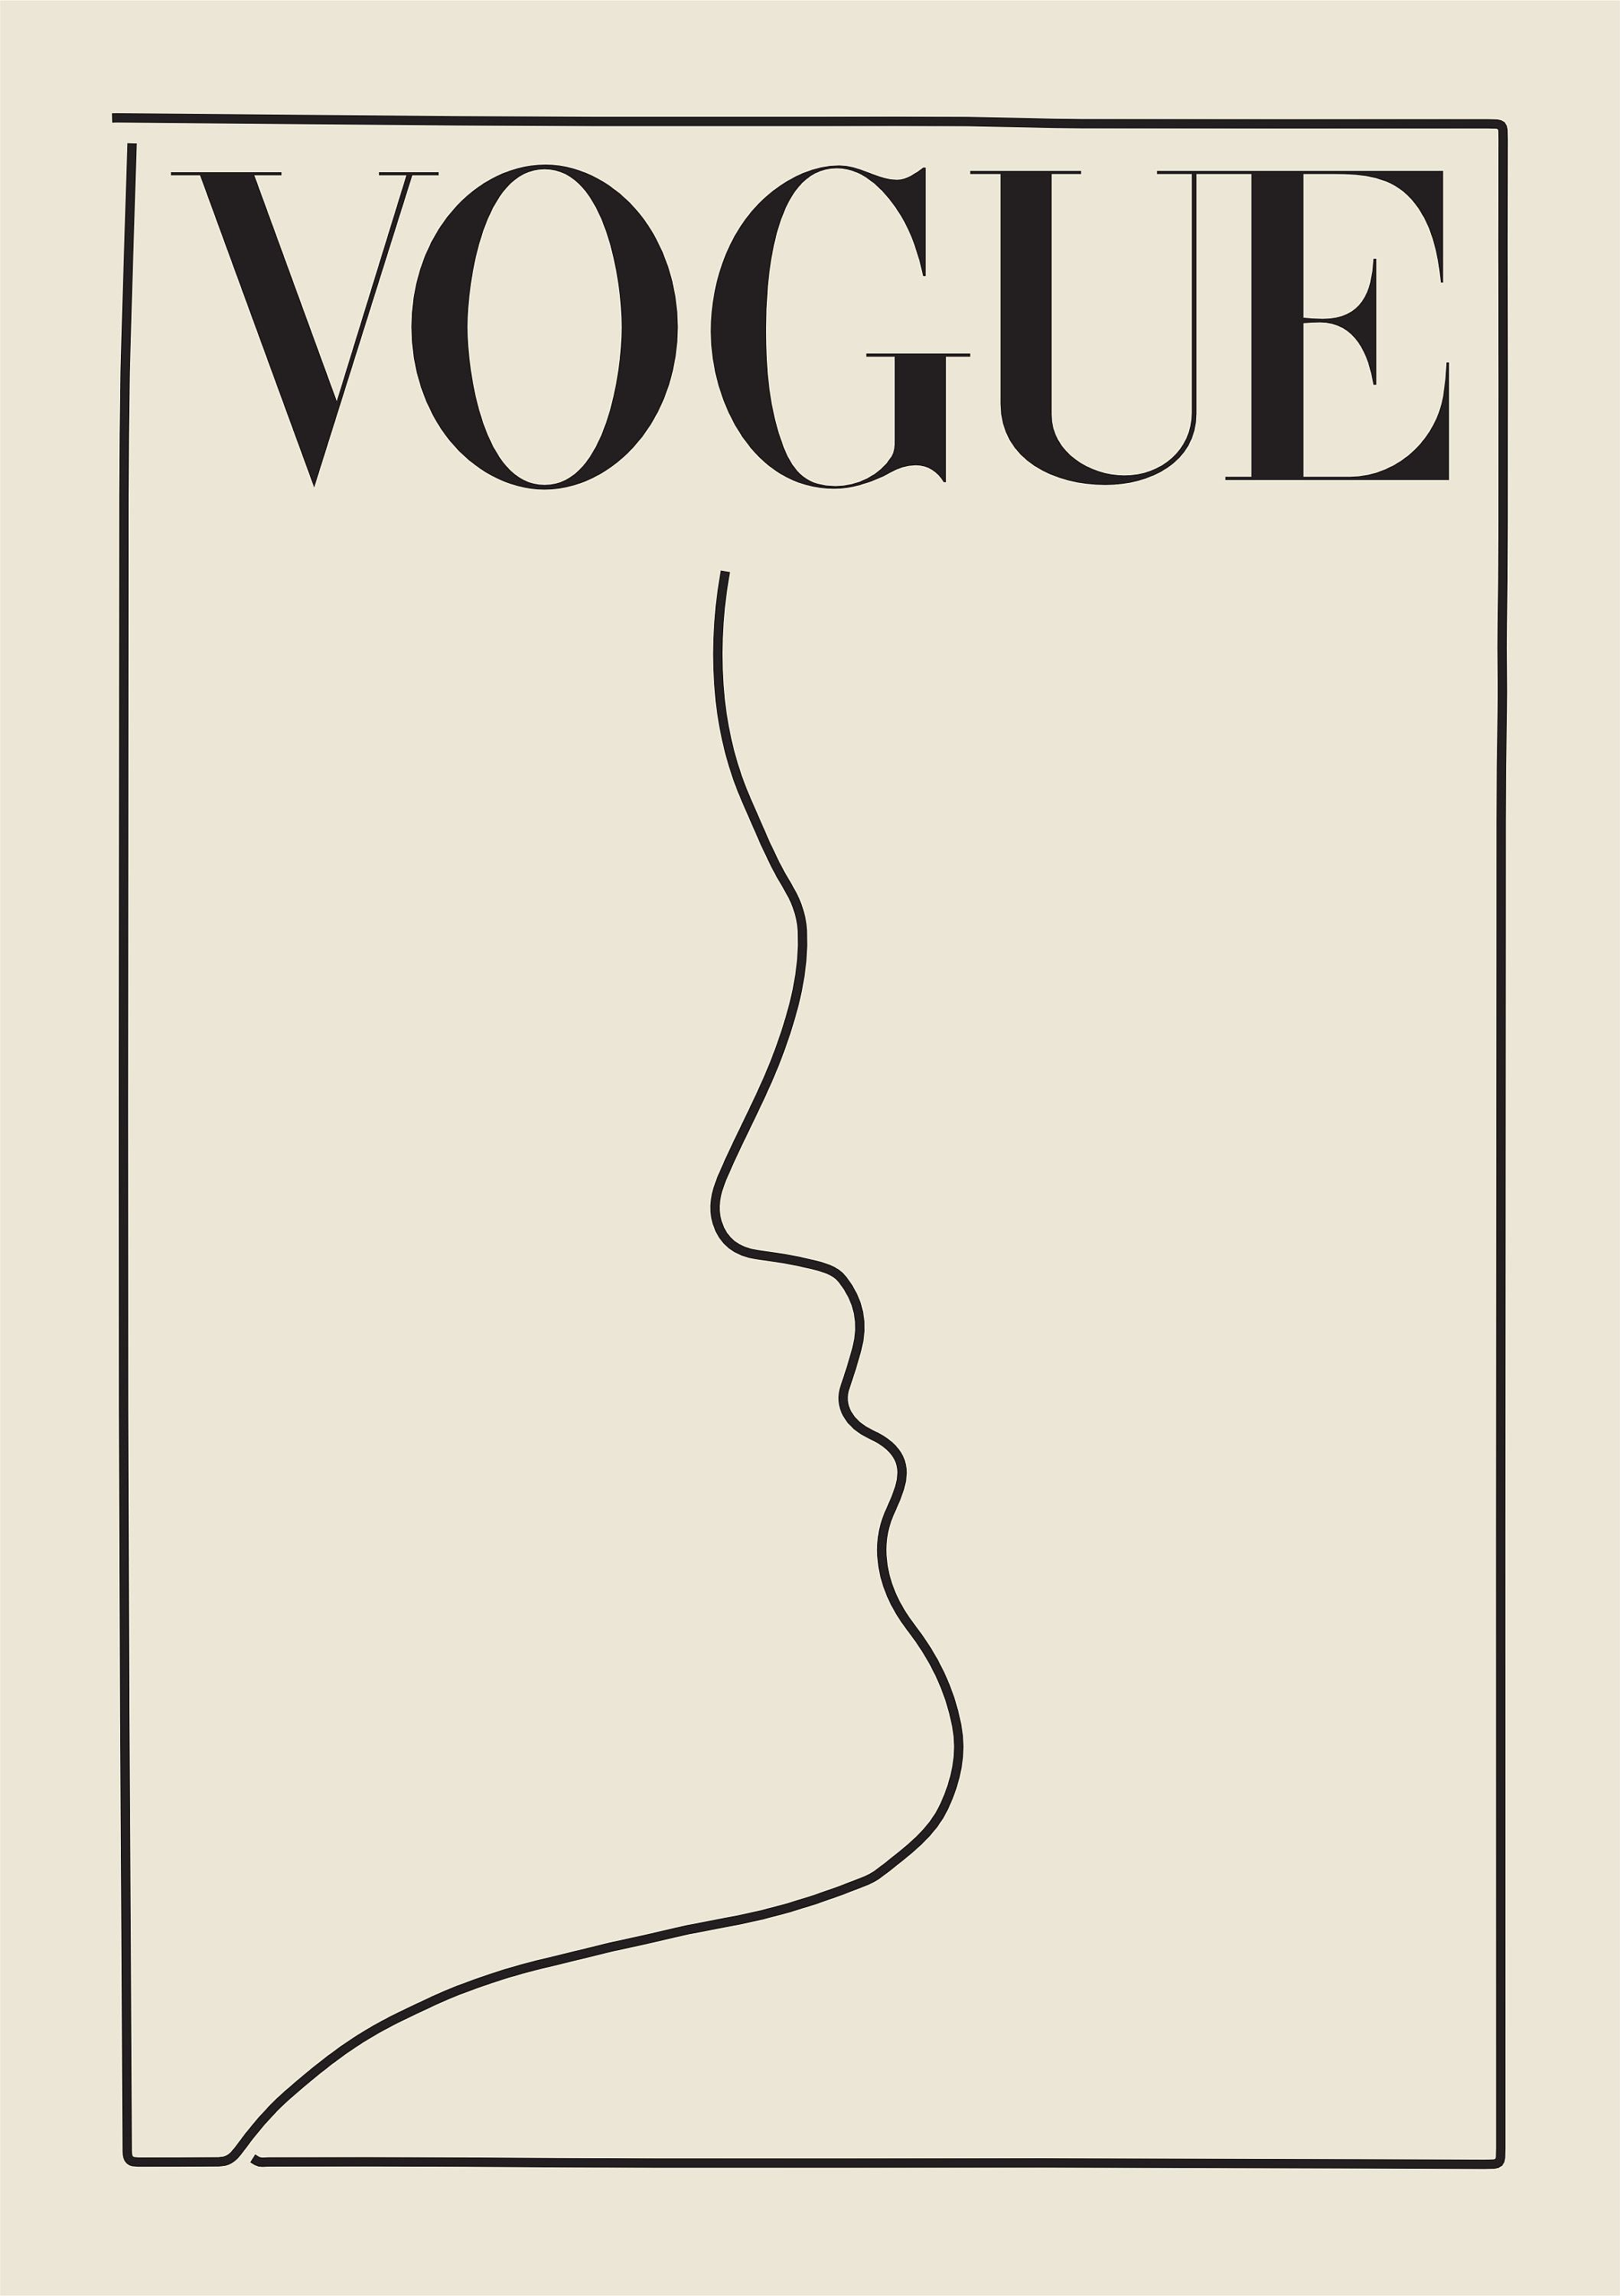 Vogue Poster Vogue Print Wall Art Gift For Her Fashion Wall Art Vintage Poster 18x27 20x30 24x36 14x2 In 2020 Retro Wall Art Vintage Poster Art Fashion Wall Art